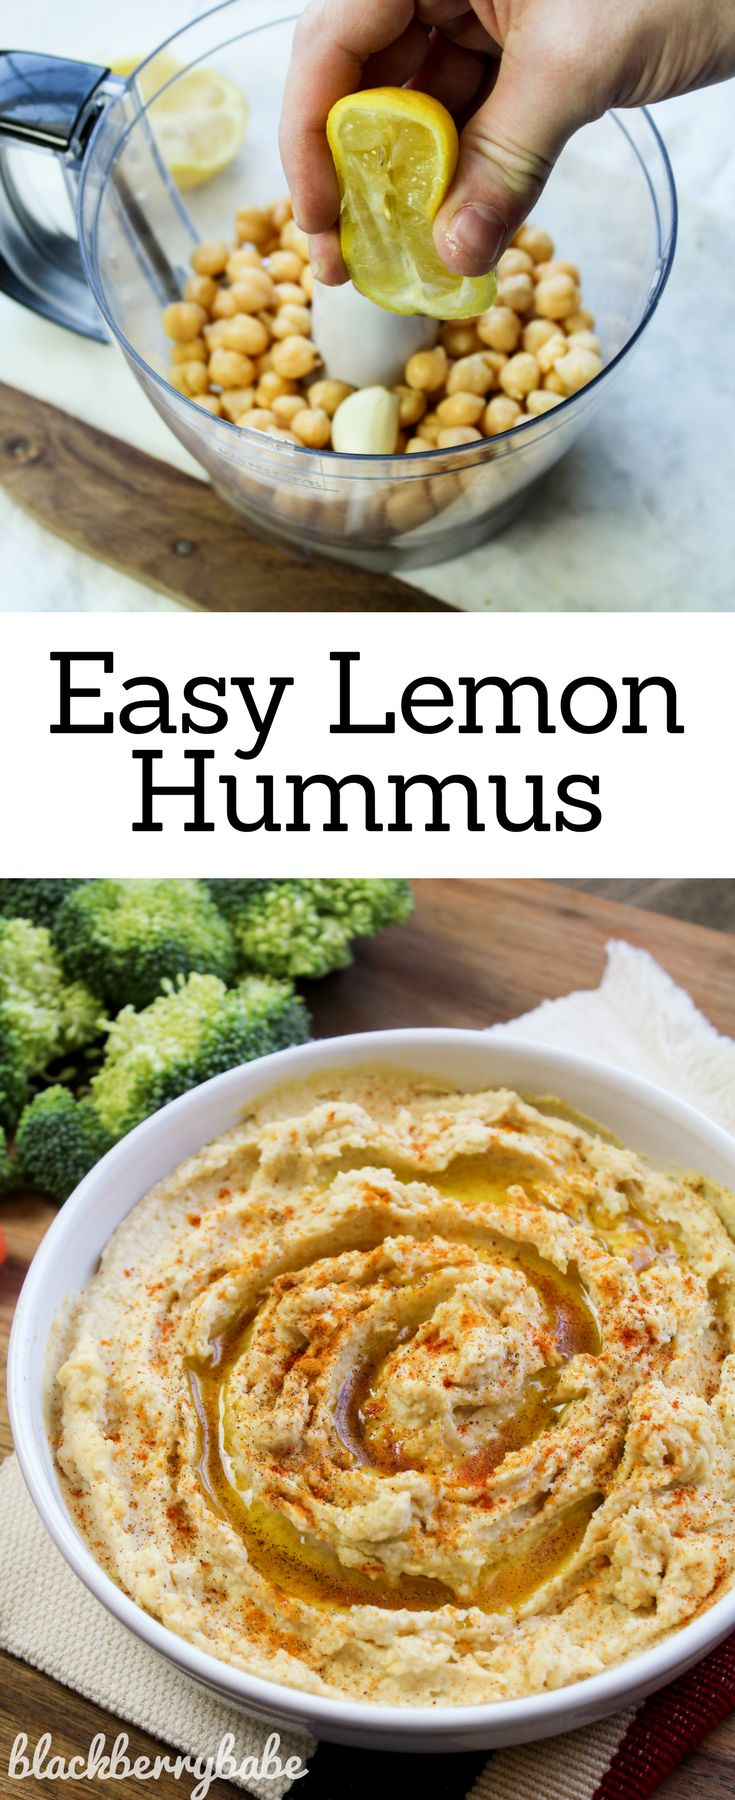 This easy Lemon Hummus is bright and flavorful, and so simple to make at home!